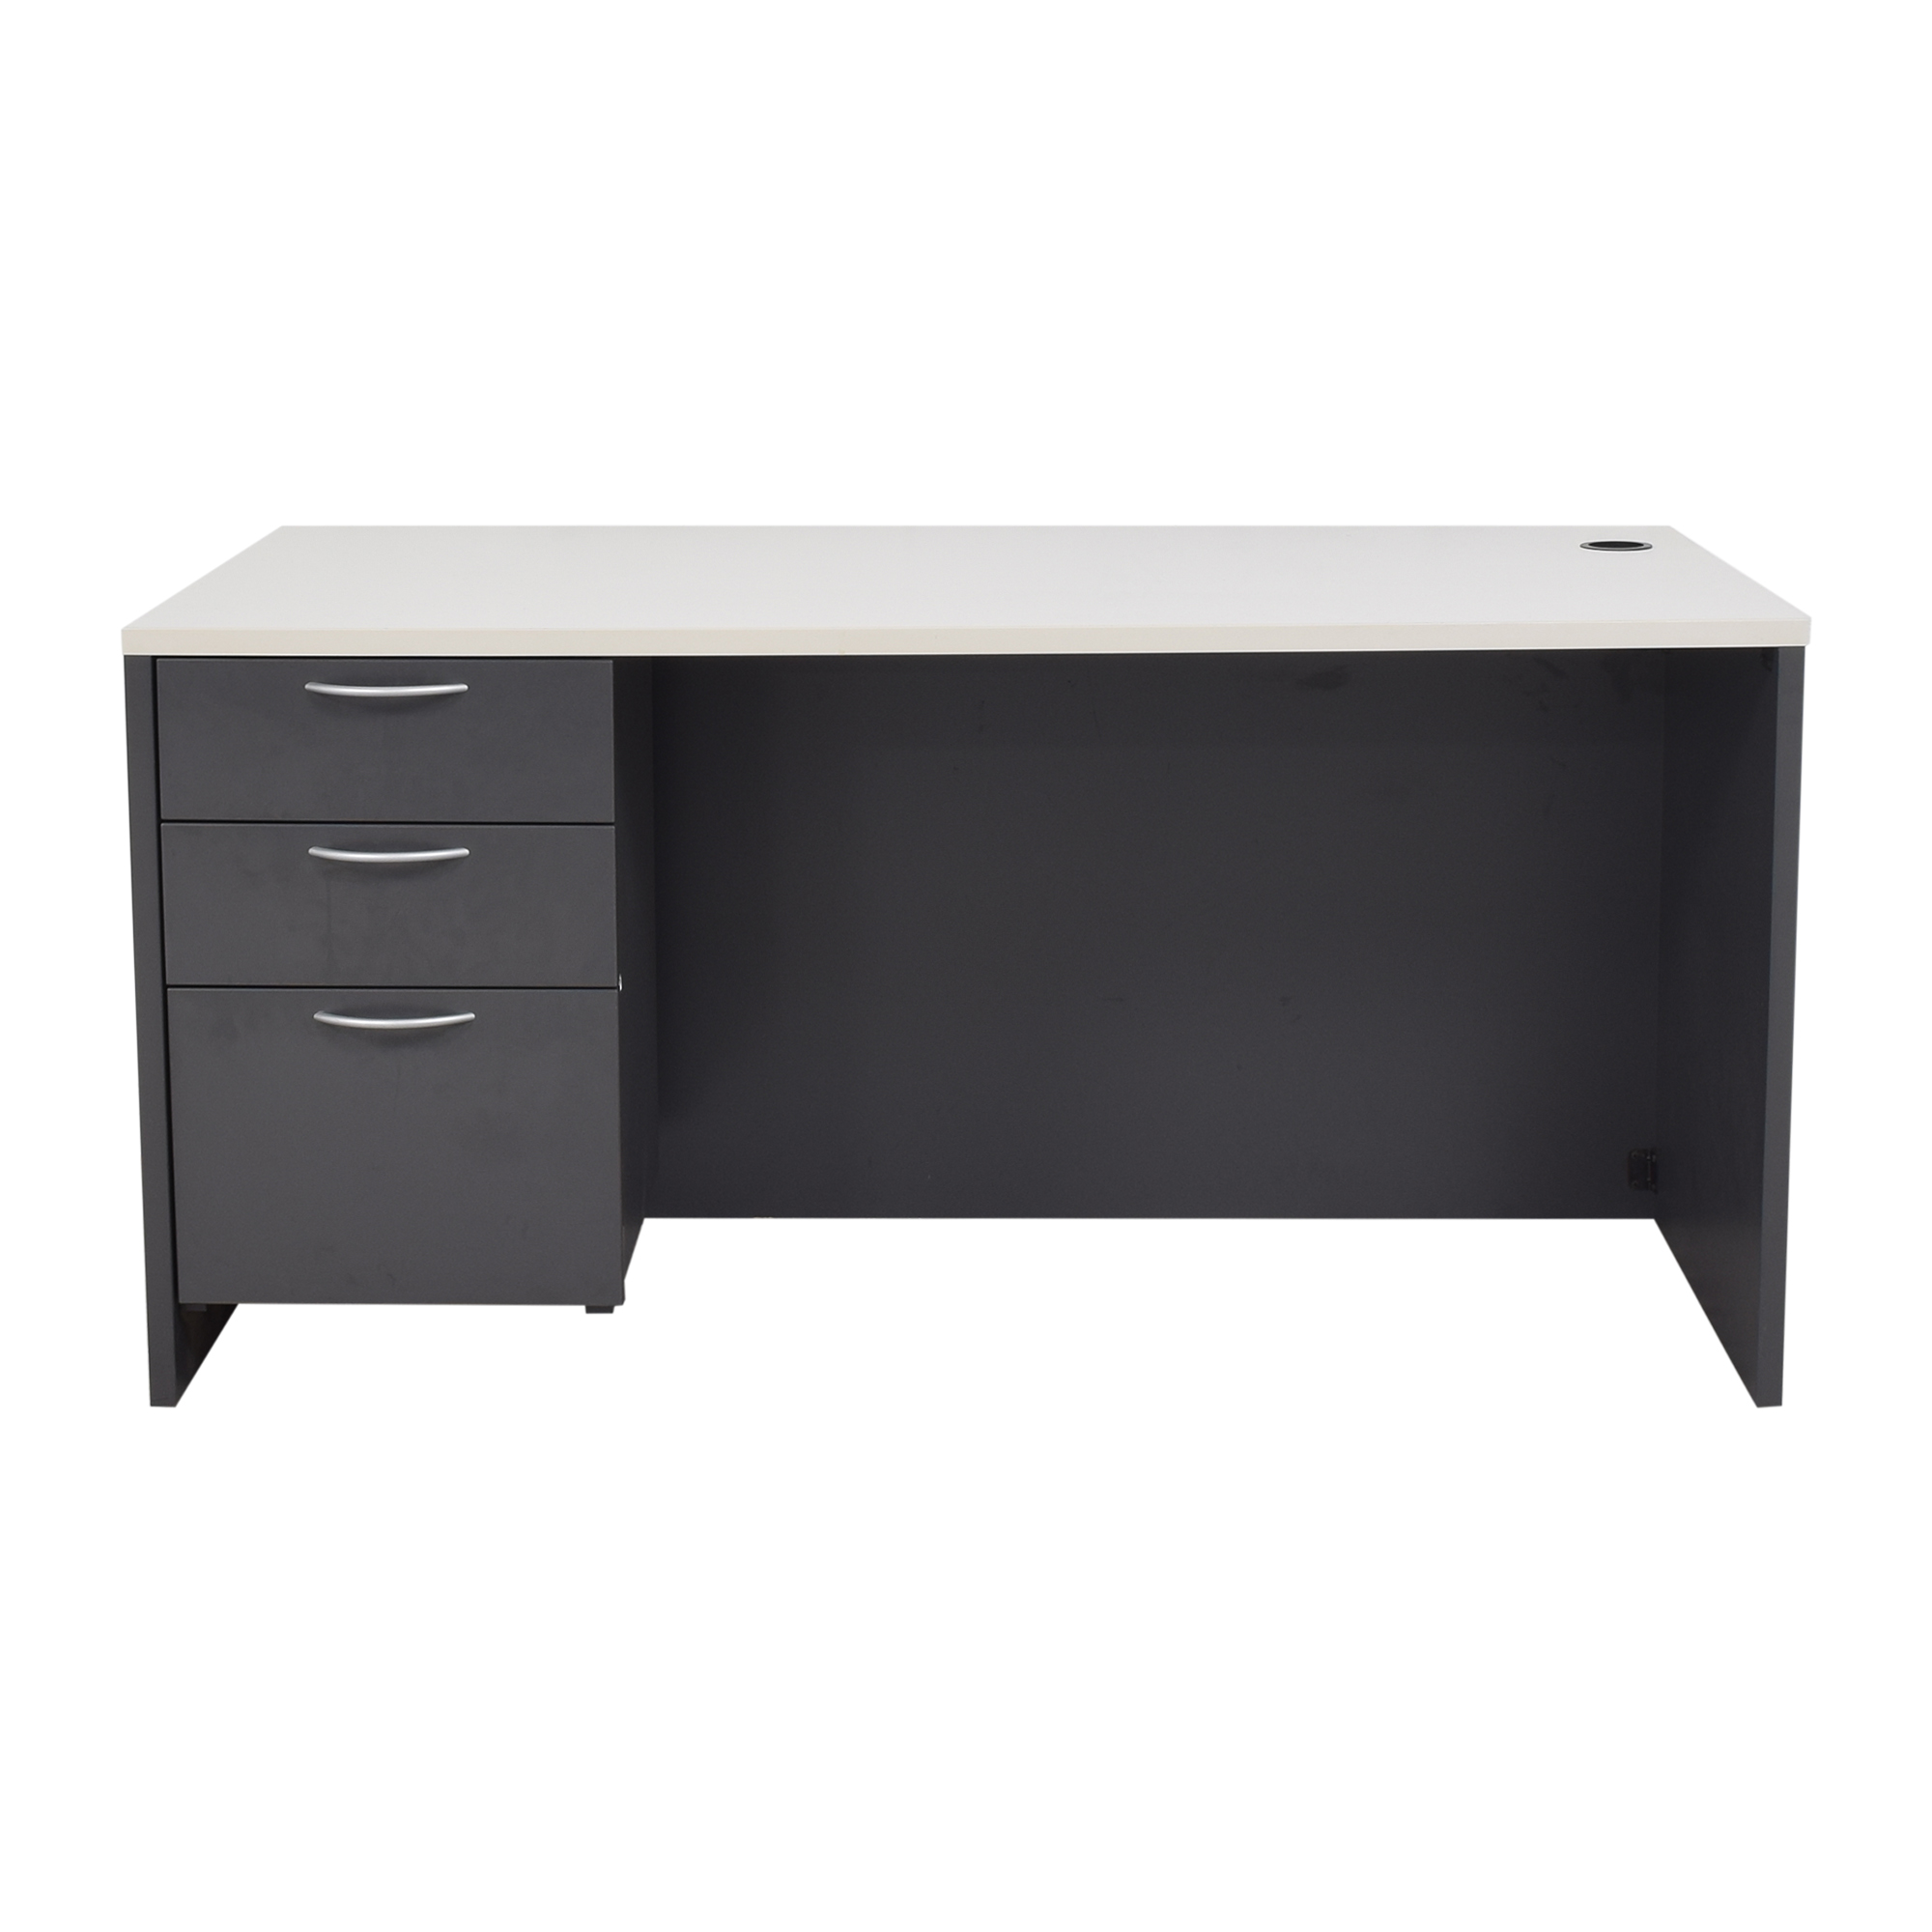 shop Office Furniture Heaven Office Furniture Heaven Three Drawer Desk online